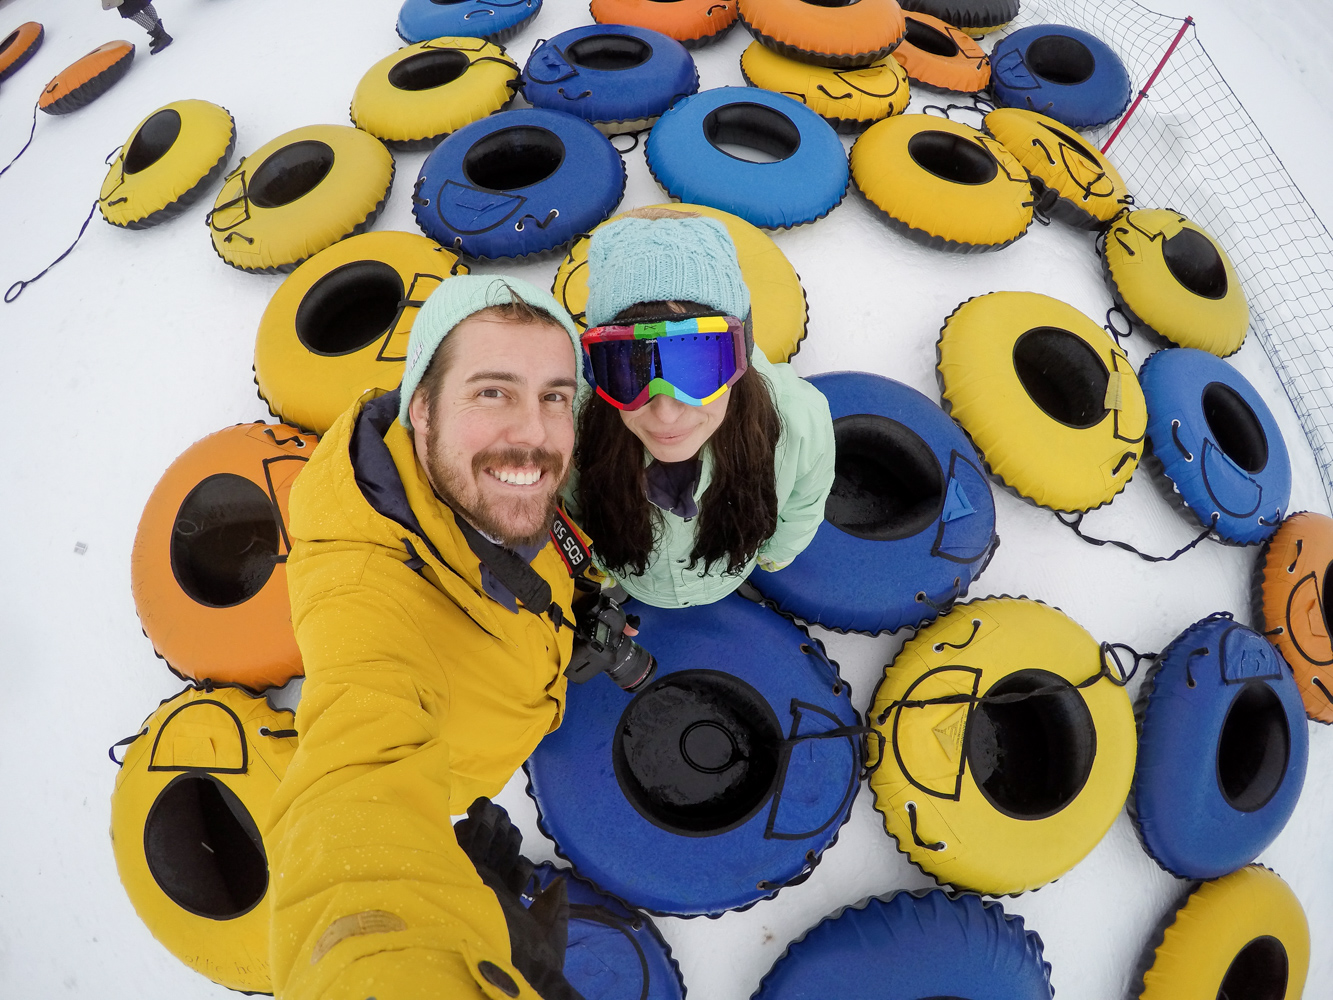 Date Night- Snow Tubing at Solider Hollow